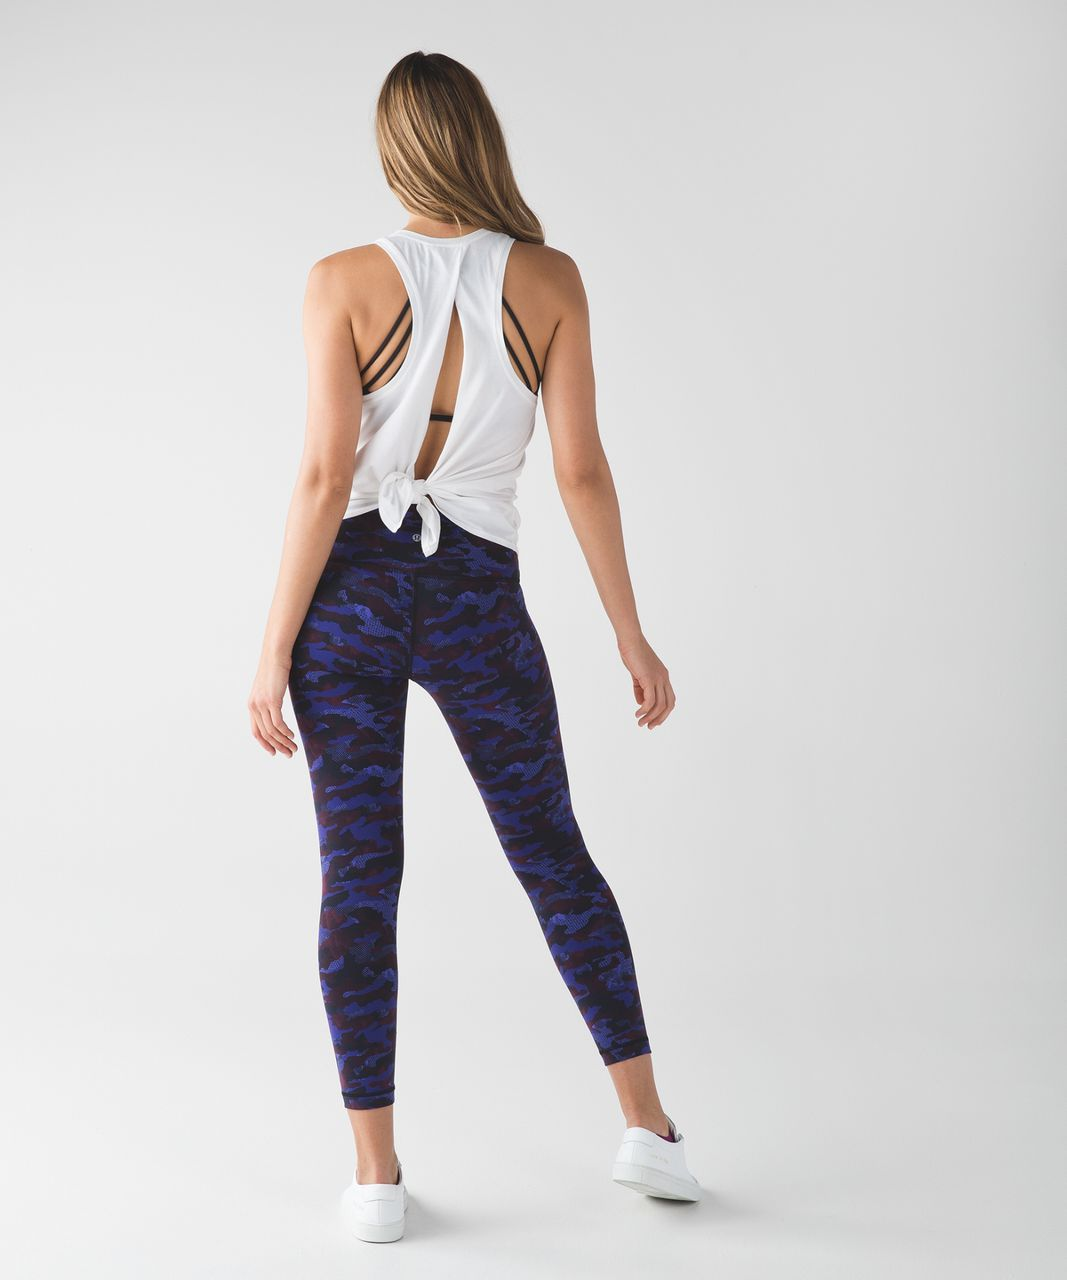 Lululemon High Times Pant - Hounds Camo Emperor Blue Black